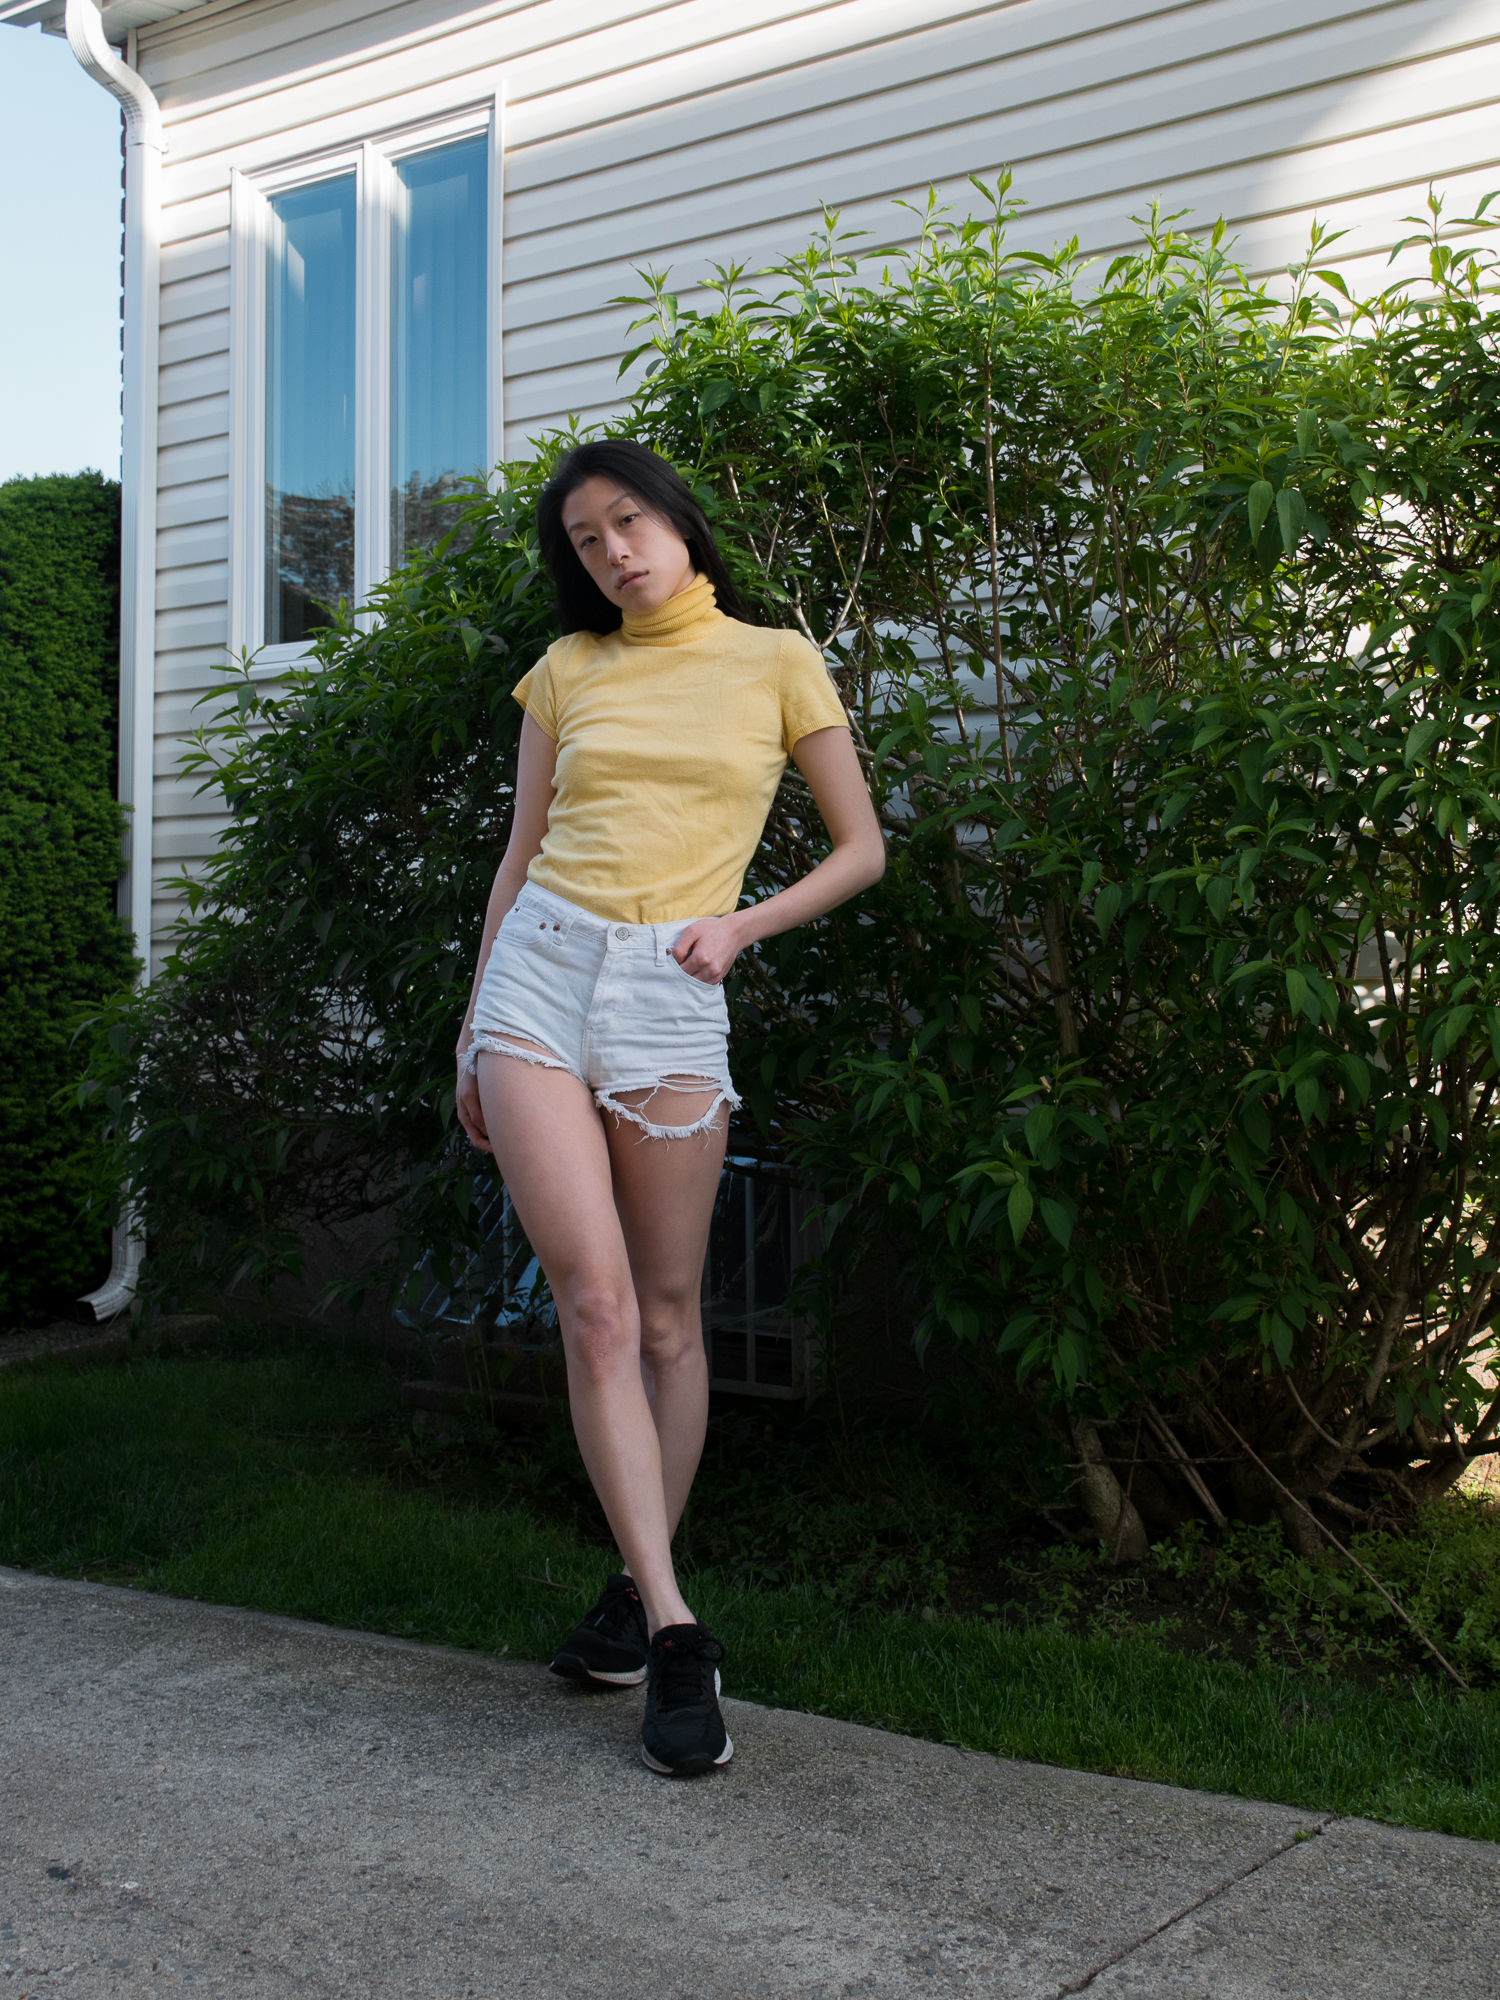 Female wearing yellow turtleneck shirt, white denim shorts, and black sneakers against green bushes